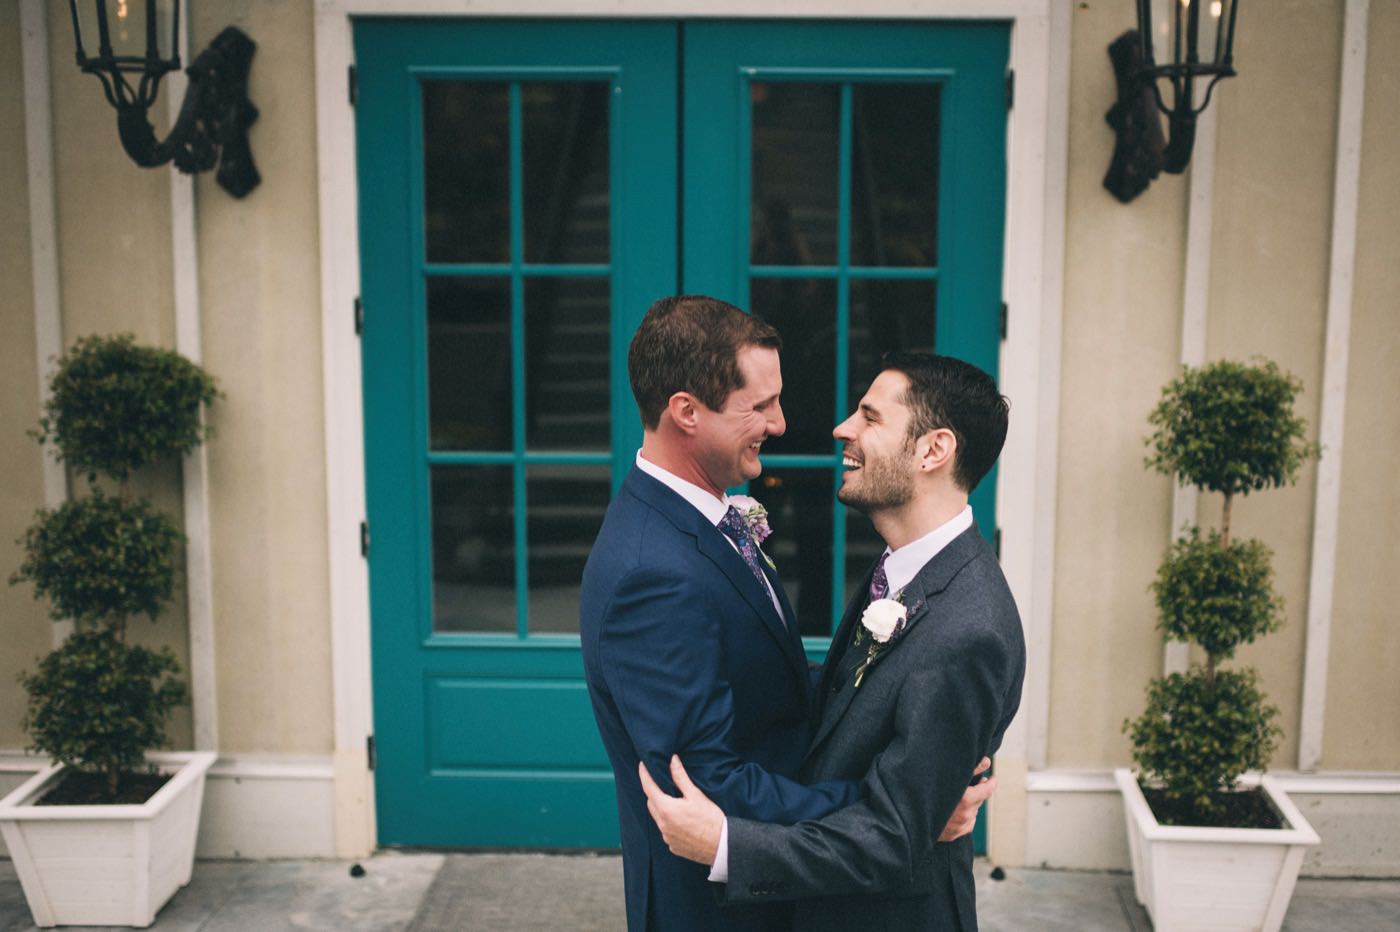 Will-Nate-Louisville-LGBTQ-Pride-Month-Kentucky-Wedding-By-Sarah-Katherine-Davis-Photograpy0009.JPG